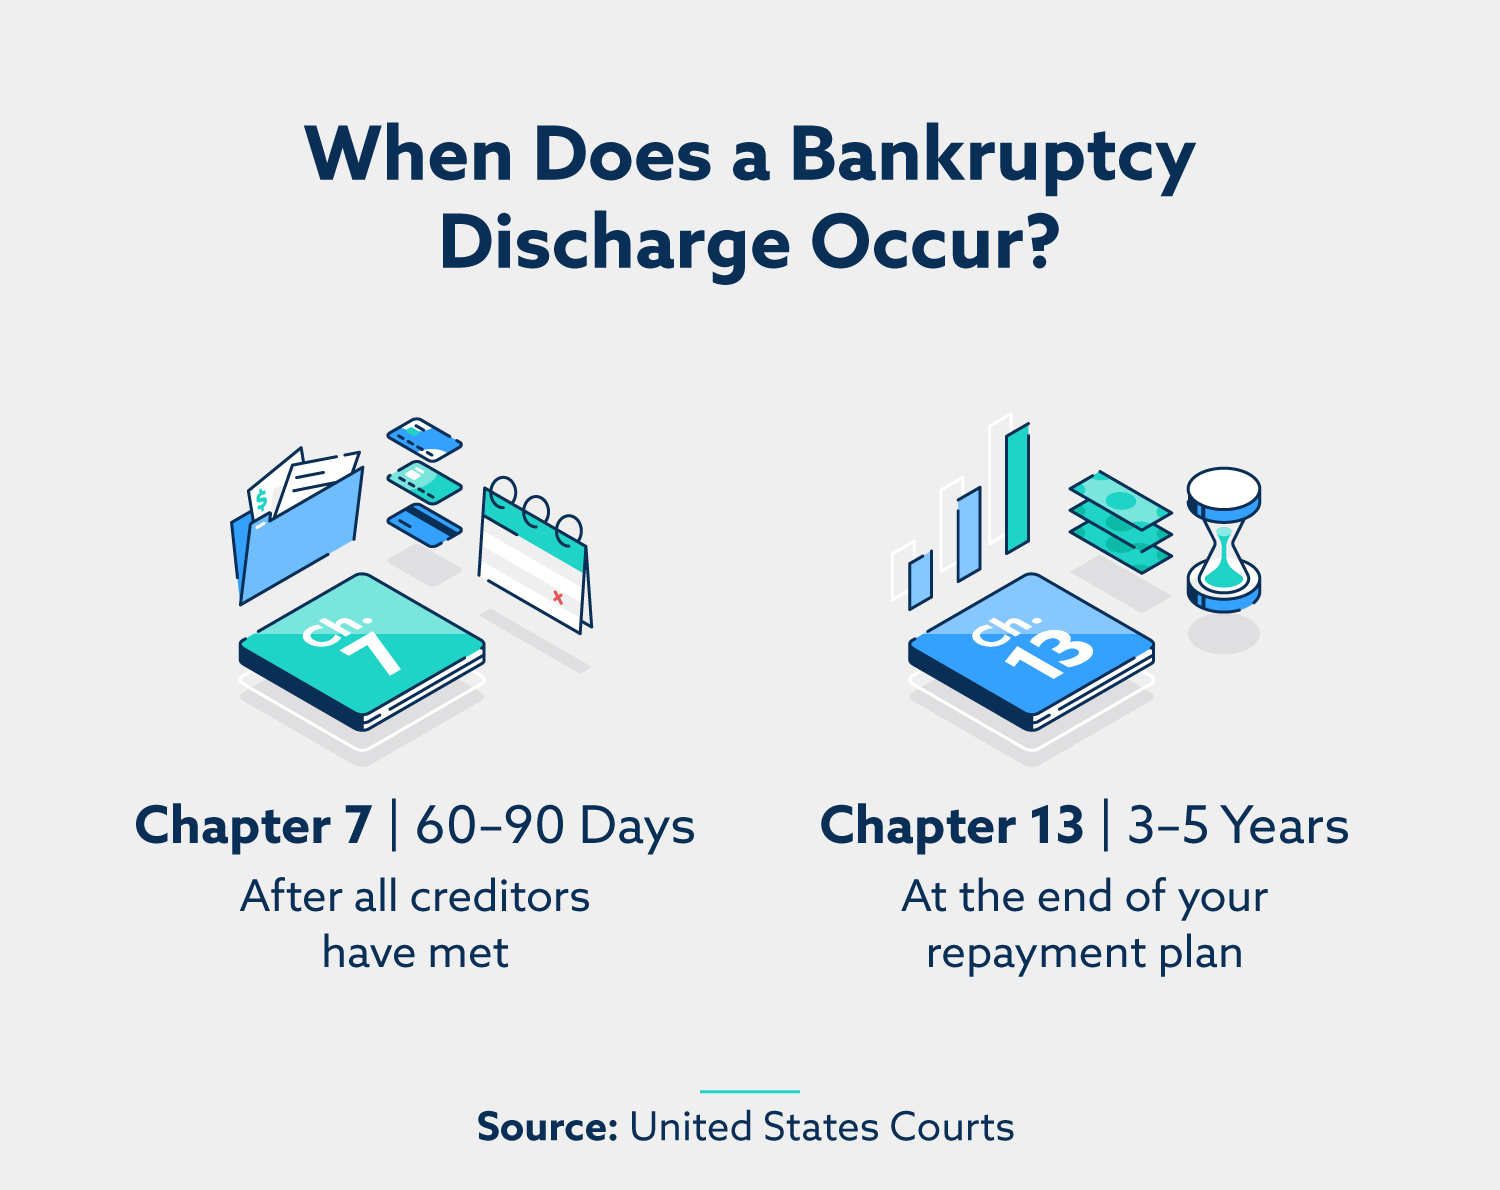 When does a bankruptcy discharge occur? Chapter 7: 60 – 90 days. After all creditors have met. Chapter 13: 3 – 5 years. At the end of your repayment plan.